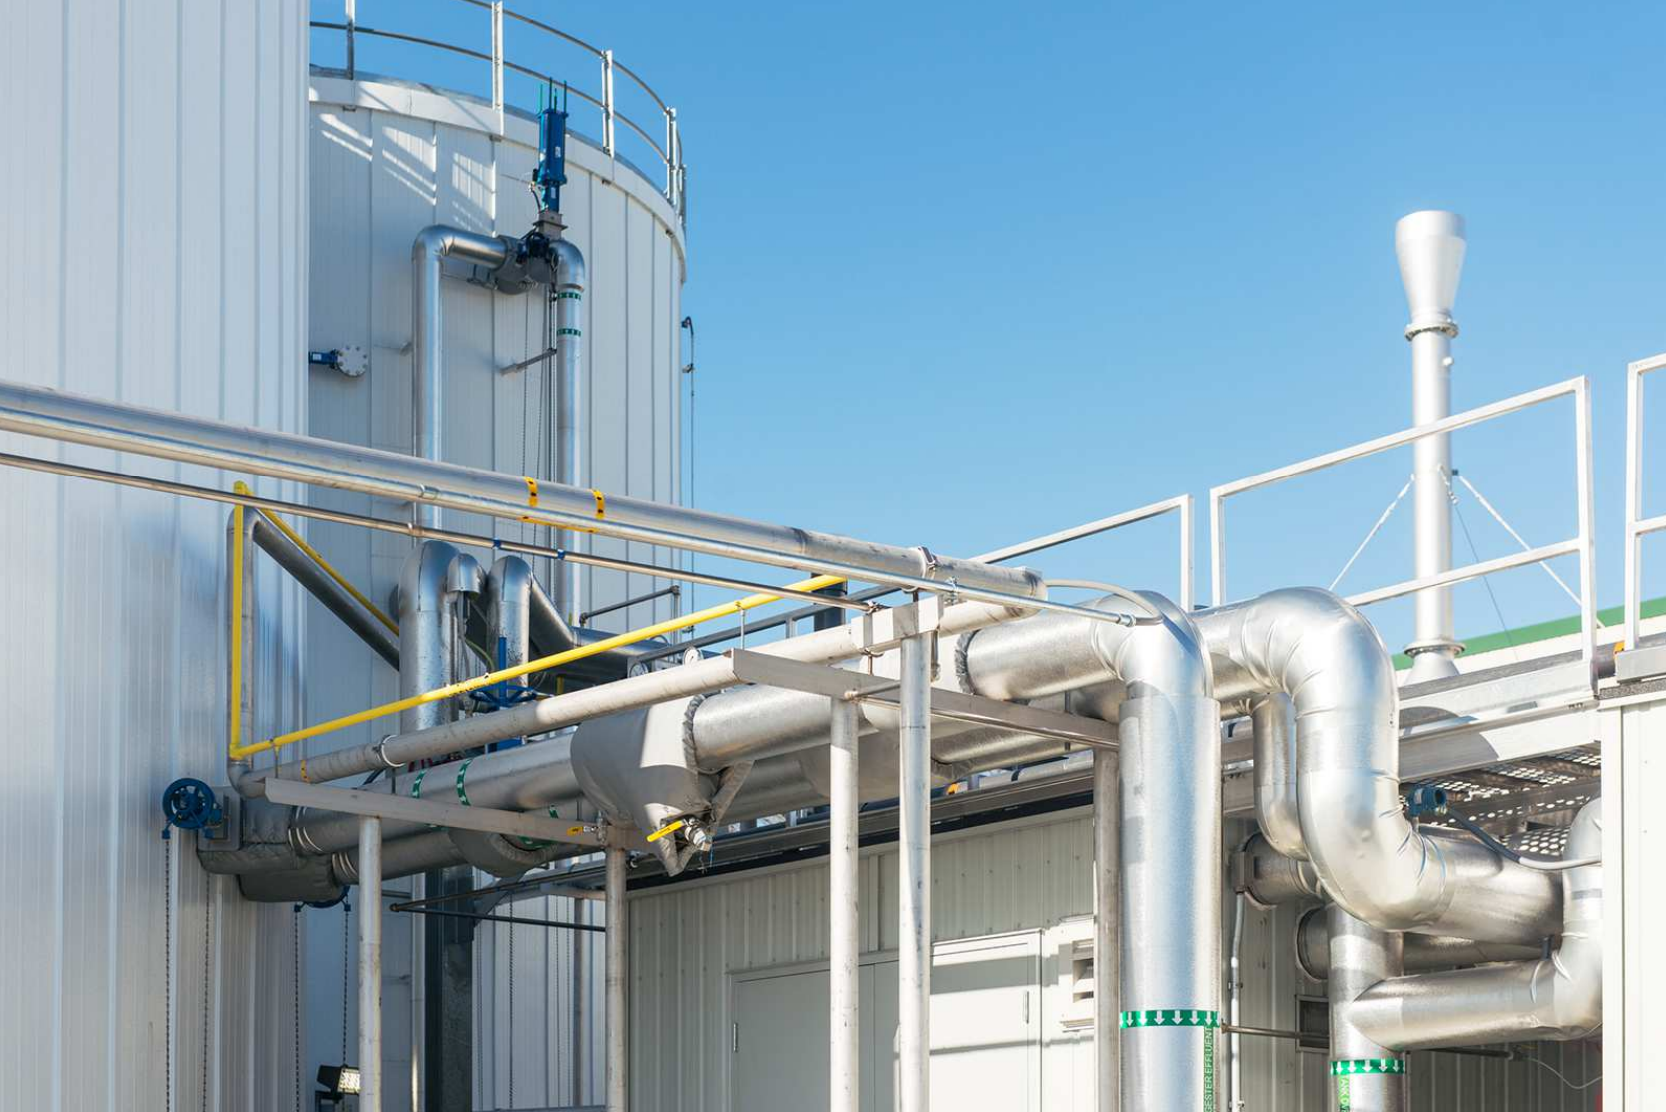 Stop & Shop's anaerobic digester outputs enough electricity to fulfill about 40 percent of the power needed for its 1 million-square-foot distribution center. (Courtesy Stop & Shop)